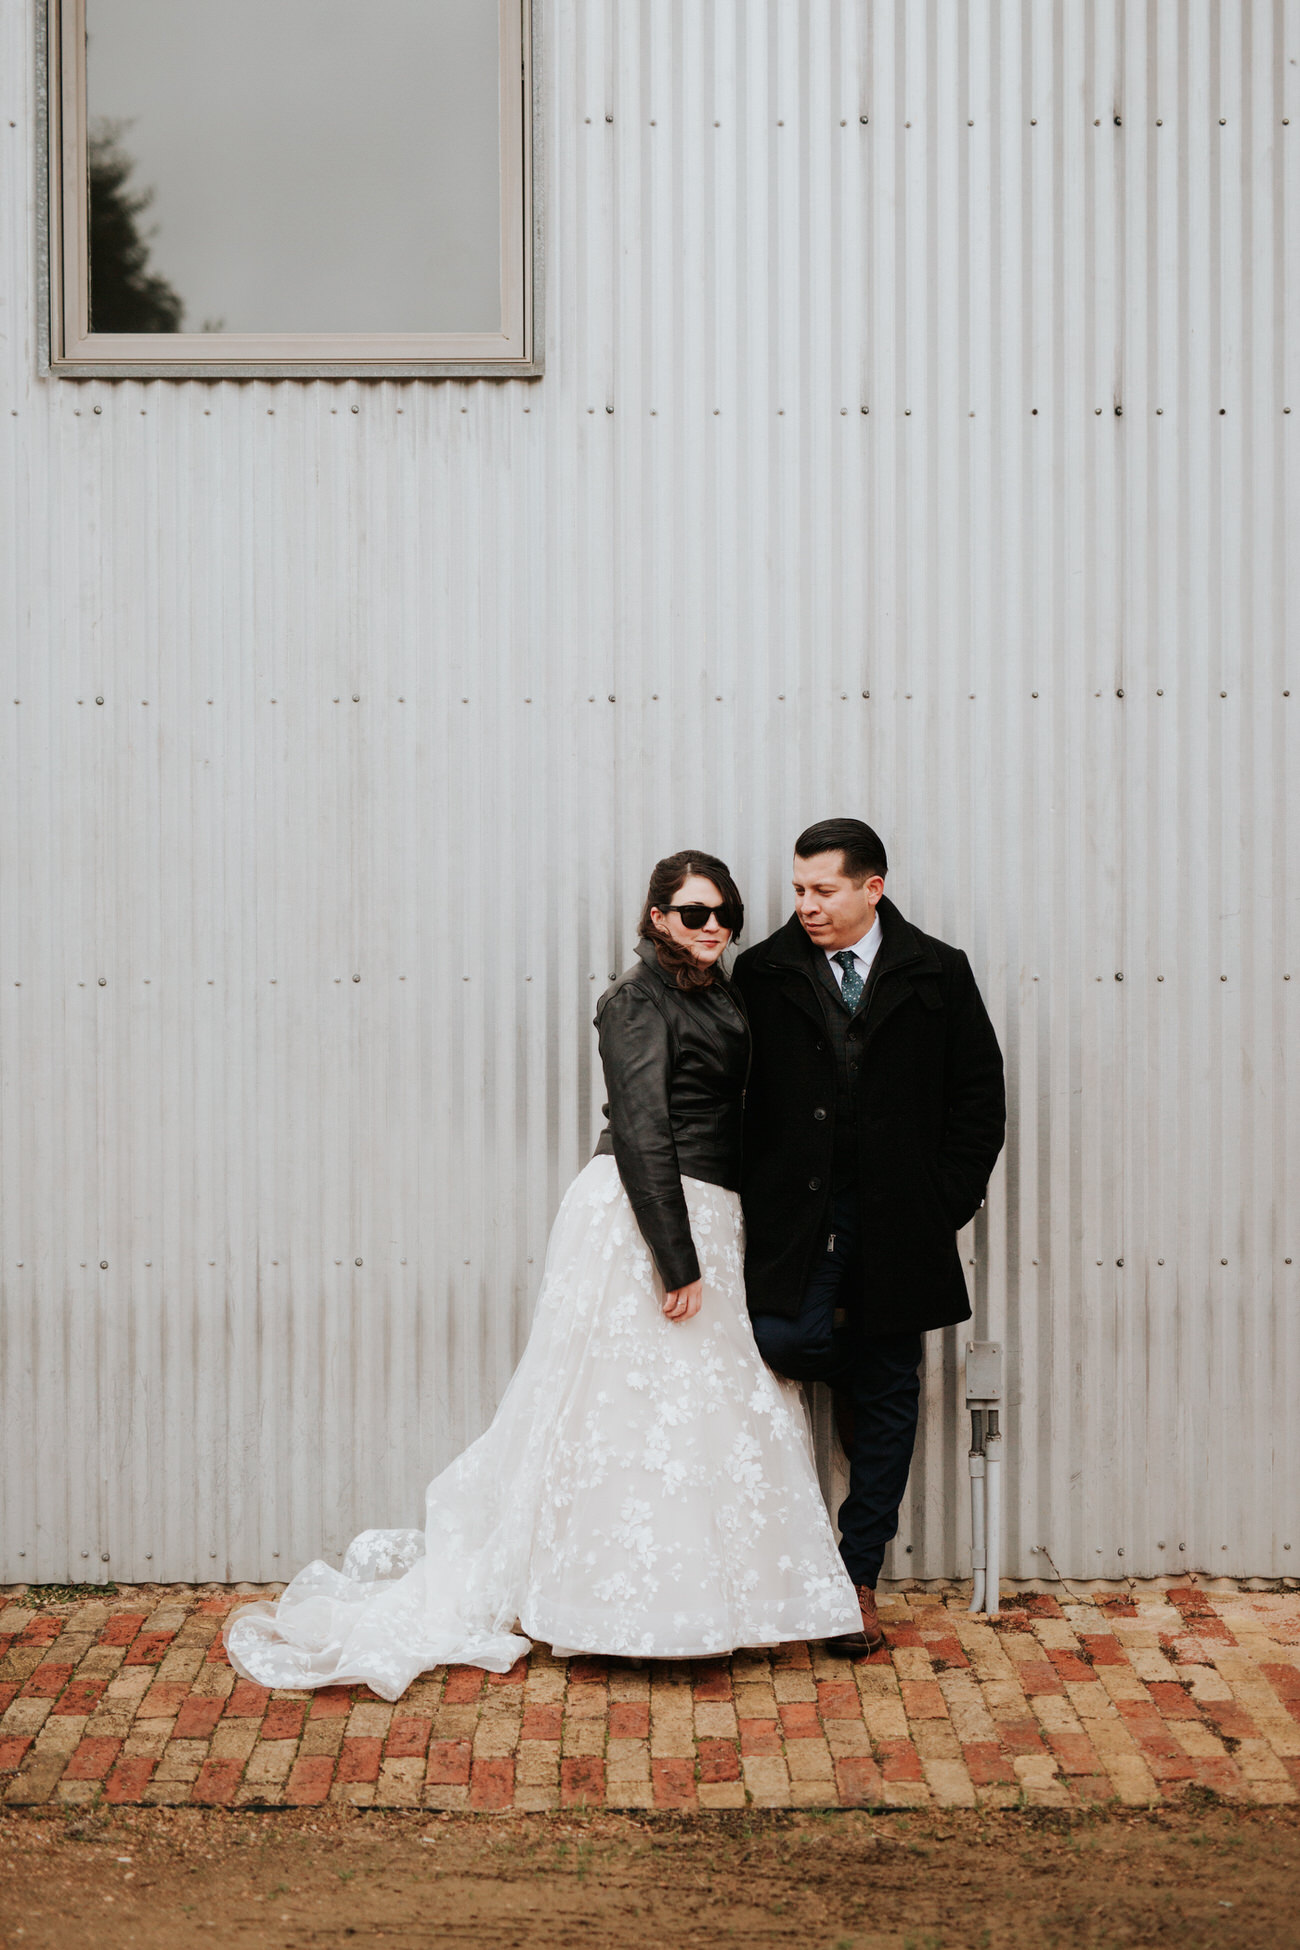 Edgy chic bride and groom